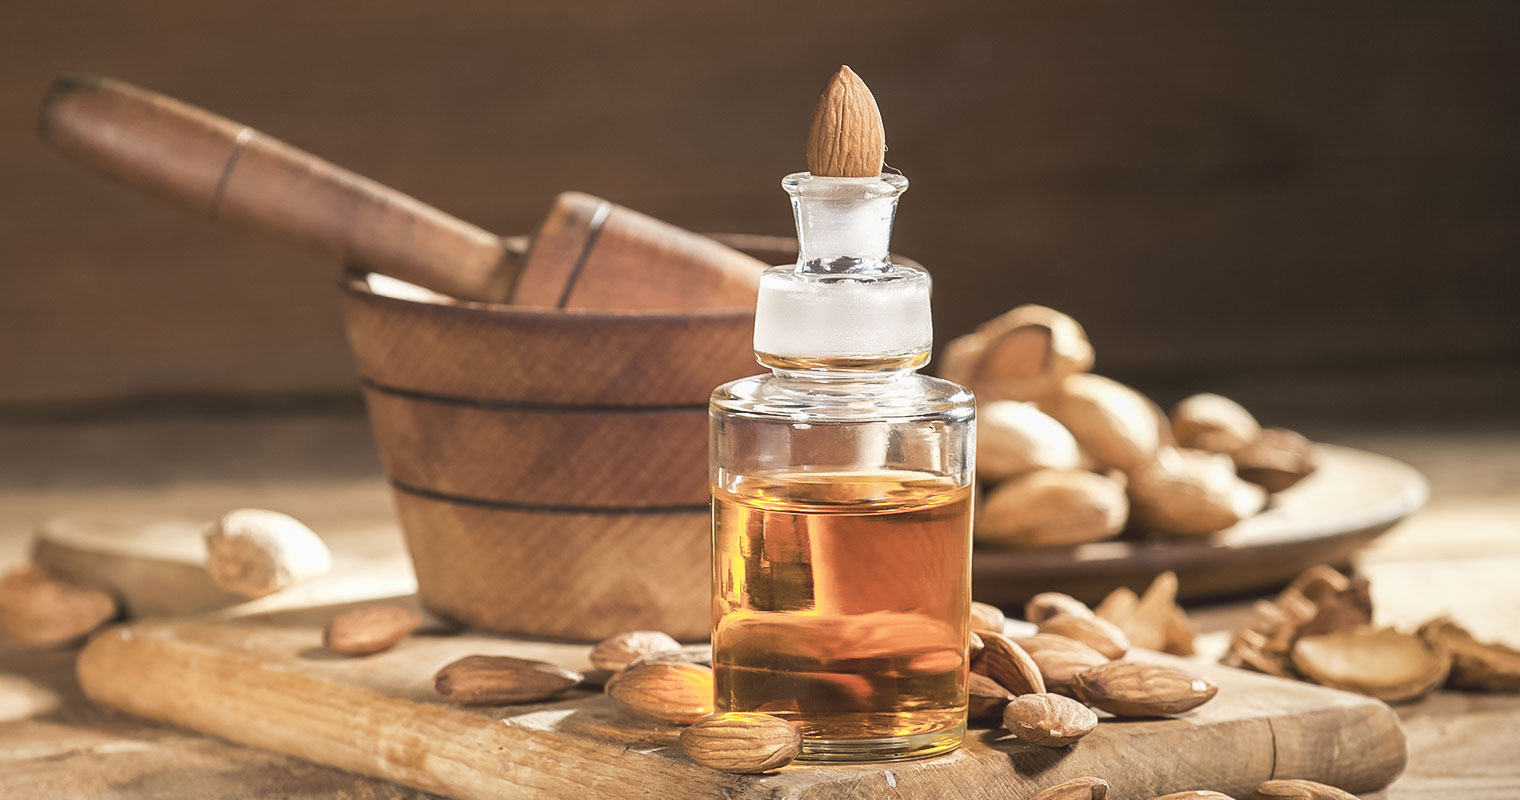 A bottle of Almond oil with a piece of Almond at the cap of the bottle